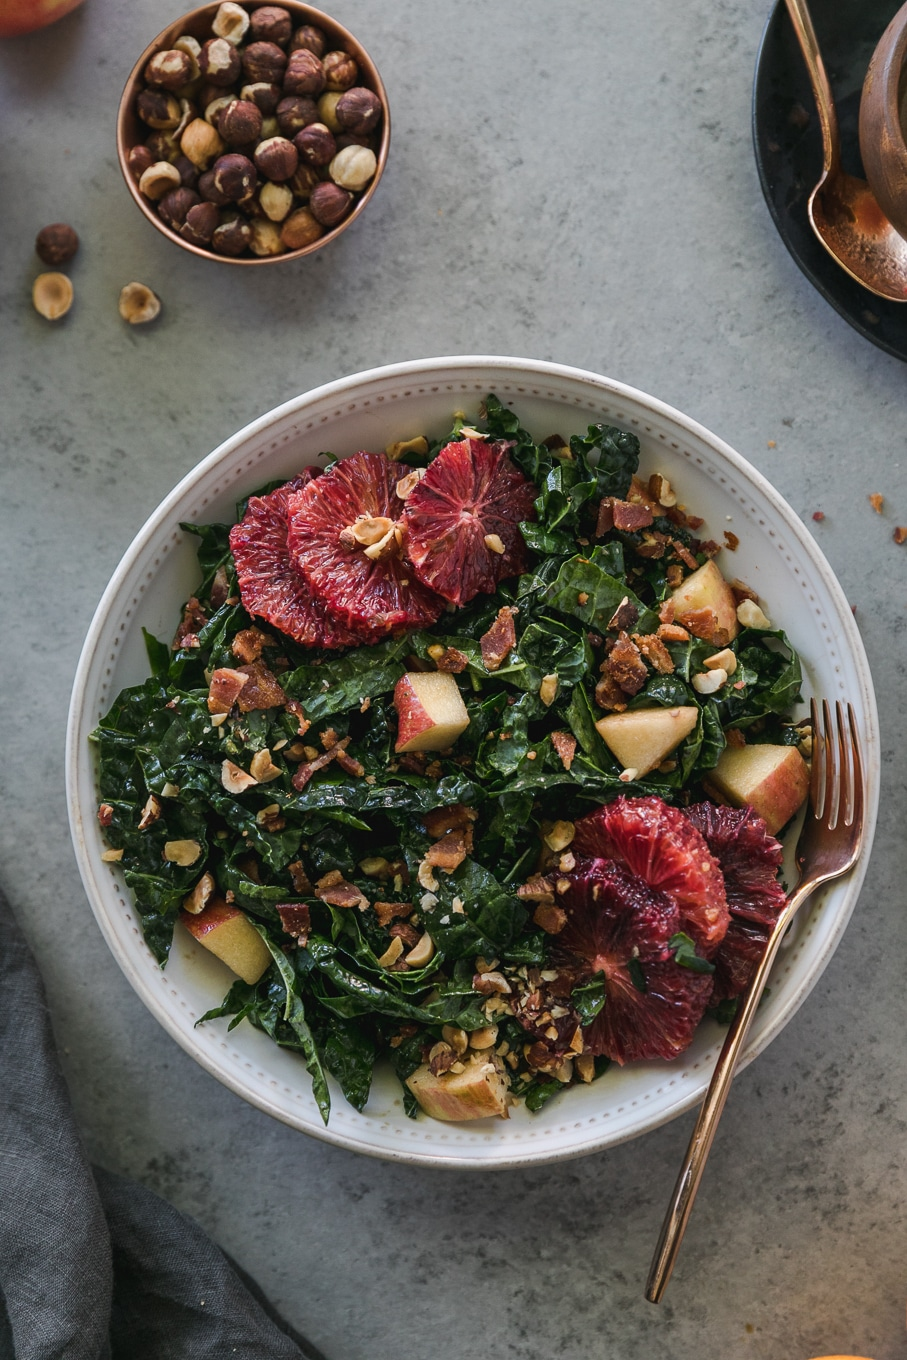 Overhead close up shot of a bowl of kale salad with blood oranges, apples, chopped bacon, and hazelnuts